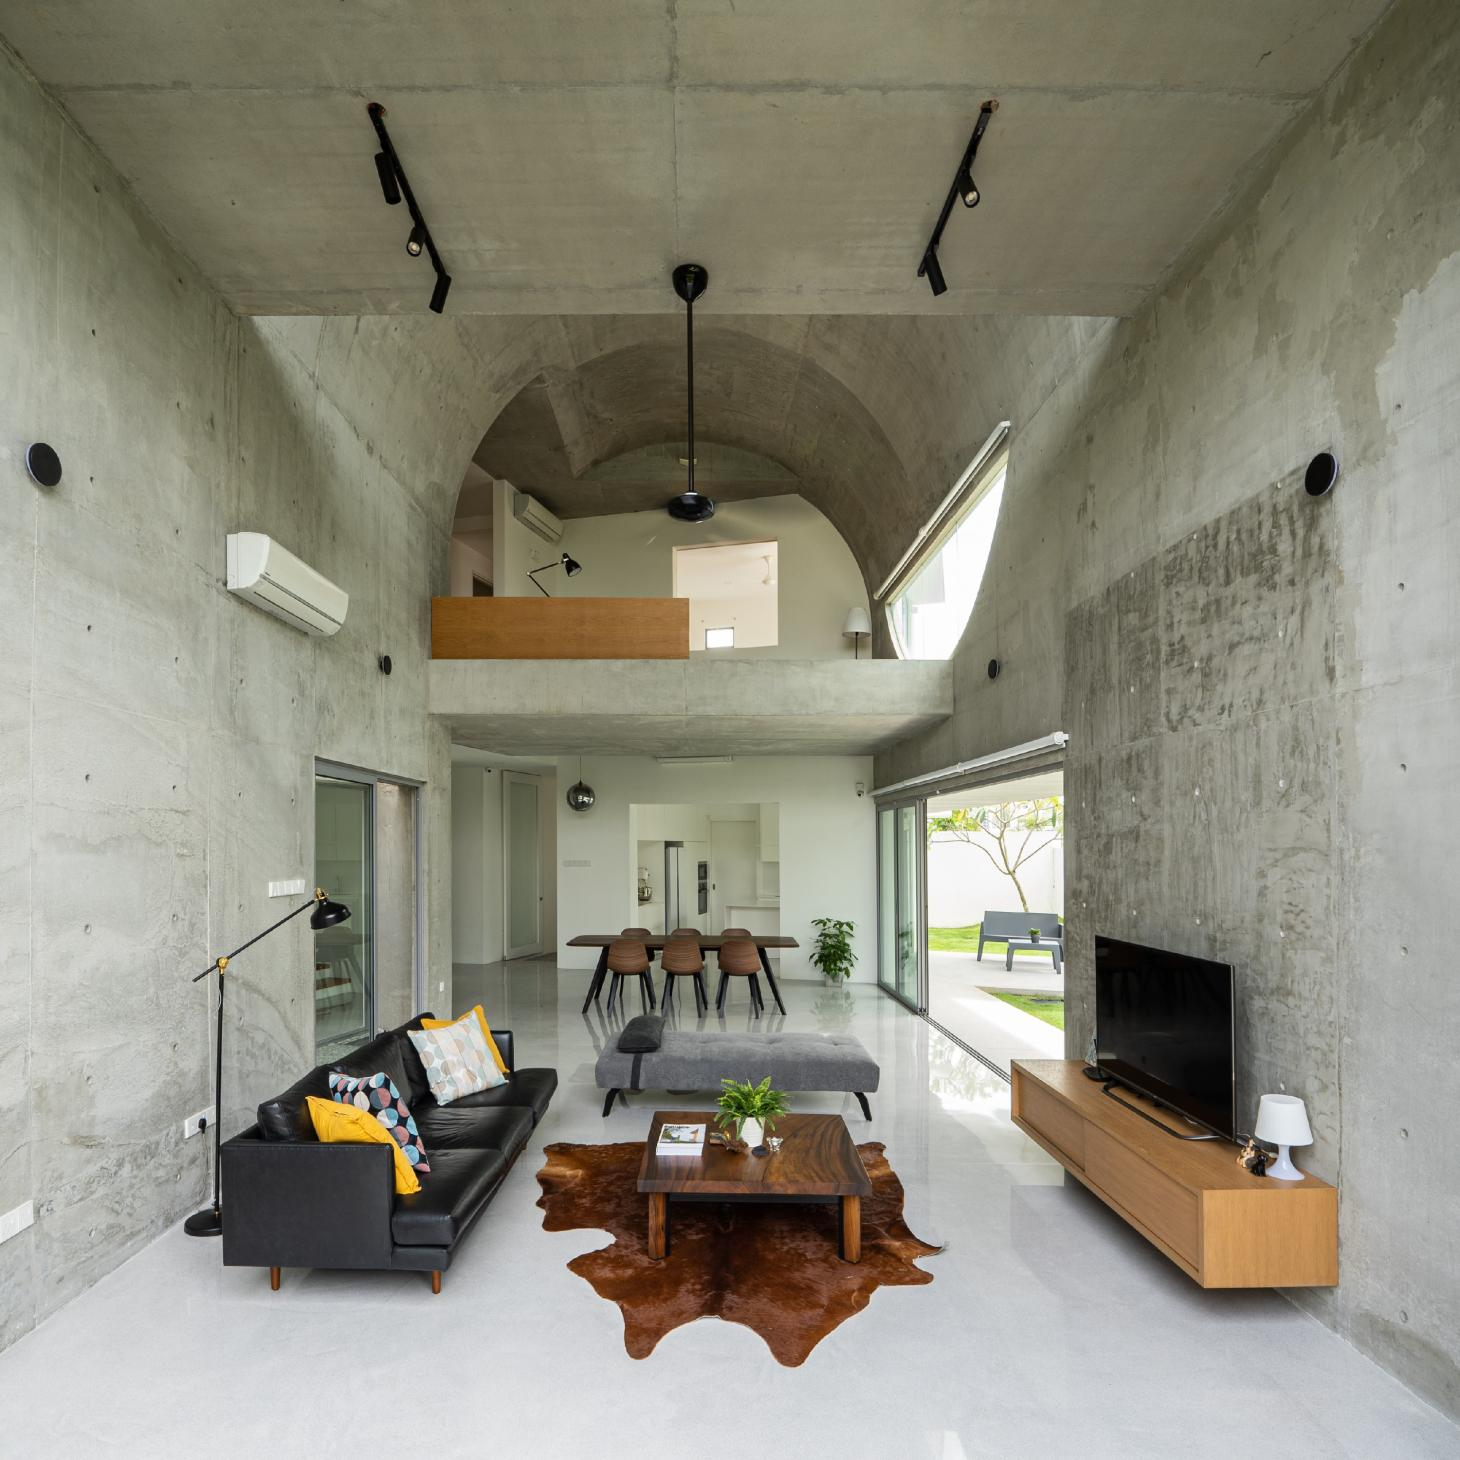 Bewboc house in Malaysia within the extension looking towards barrel vaulted roof